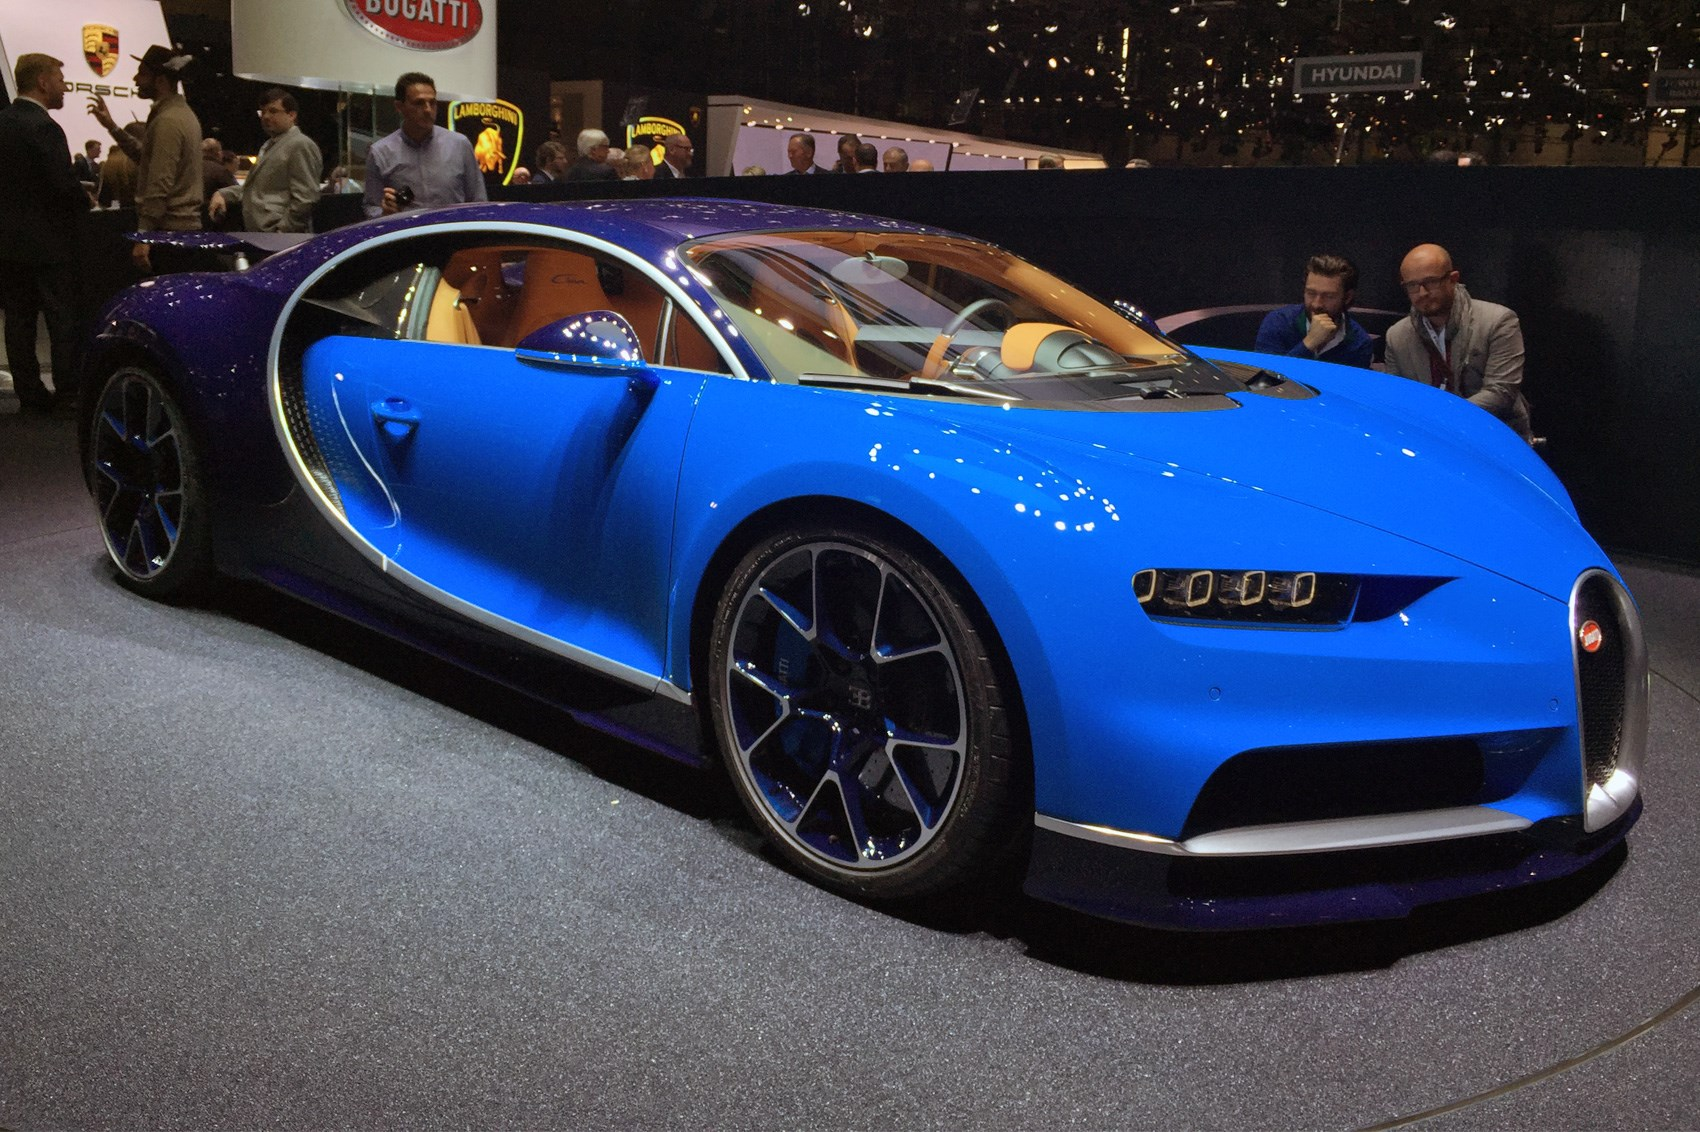 Ultrablogus  Ravishing Bugatti Is Go New Chiron Name Confirmed Here At Geneva  By  With Fetching Bugatti Chiron Revealed At Geneva  The World Has A New Fastest Production Car With Amusing How To Fix Interior Door Also Hummer  Interior In Addition  Toyota Tundra Interior And  Ford Mustang Interior As Well As  Porsche Cayenne Interior Additionally  Impreza Interior From Carmagazinecouk With Ultrablogus  Fetching Bugatti Is Go New Chiron Name Confirmed Here At Geneva  By  With Amusing Bugatti Chiron Revealed At Geneva  The World Has A New Fastest Production Car And Ravishing How To Fix Interior Door Also Hummer  Interior In Addition  Toyota Tundra Interior From Carmagazinecouk